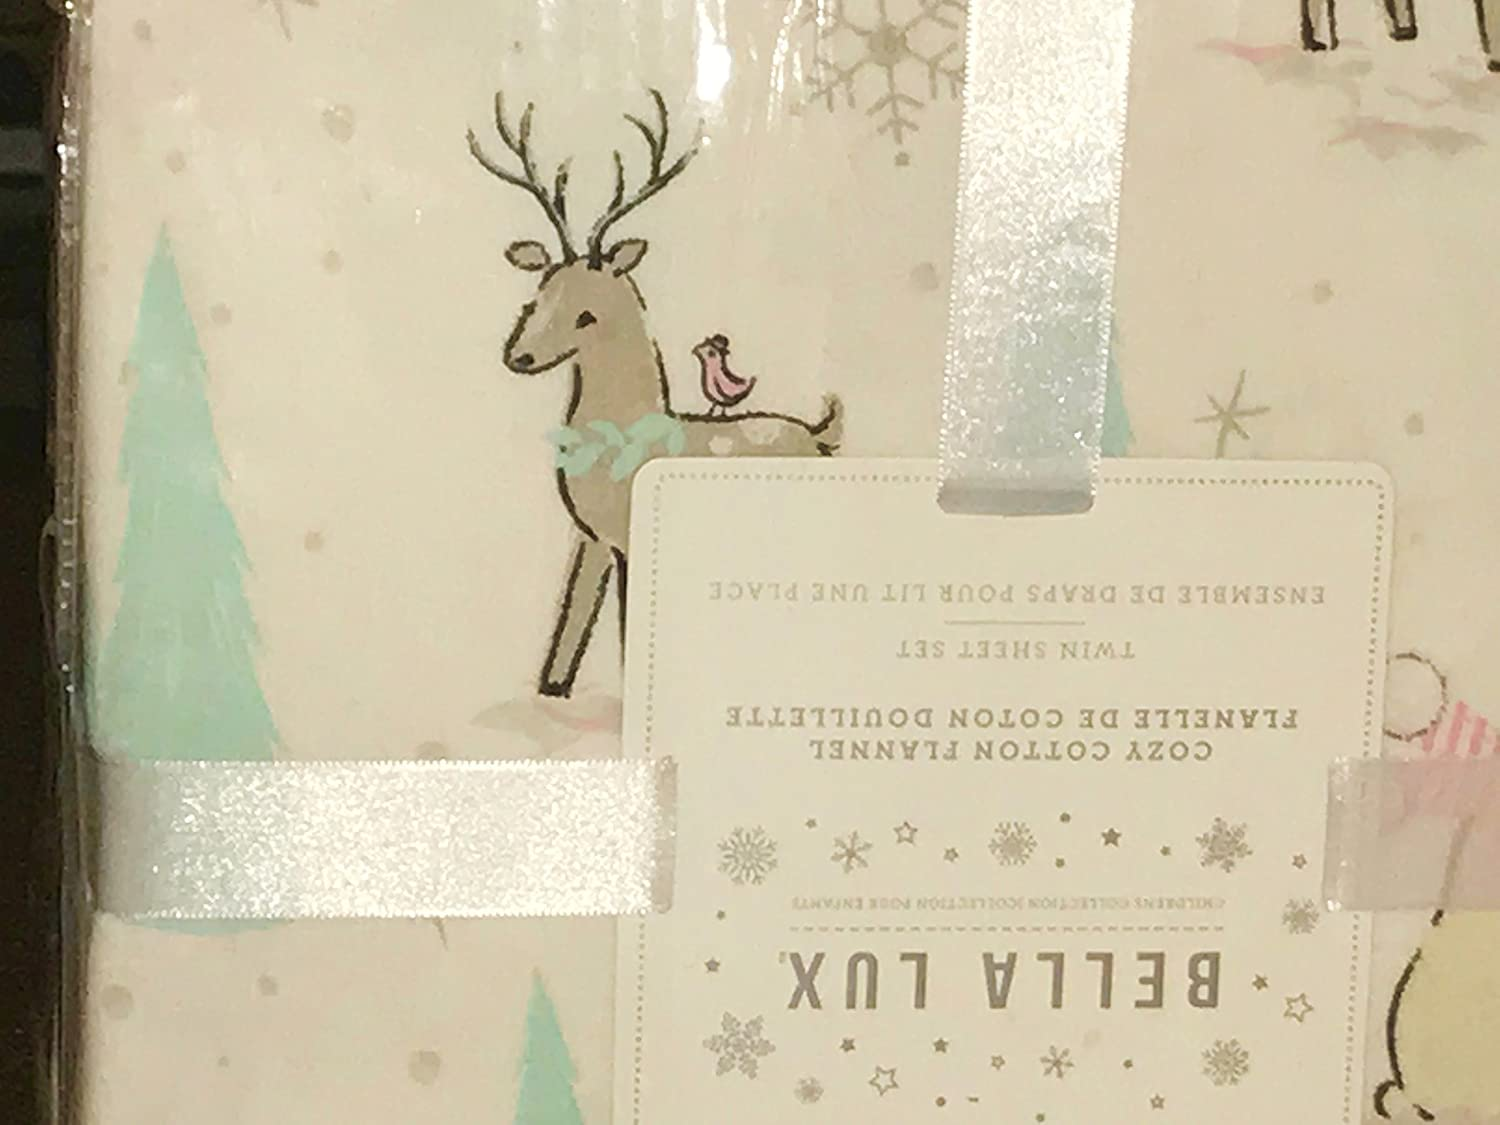 All Cotton Flannel All Cotton Flannel Full Size with White Background Bella Lux Polar Bear Penguin Deer Christmas Tree Flannel Sheet Set